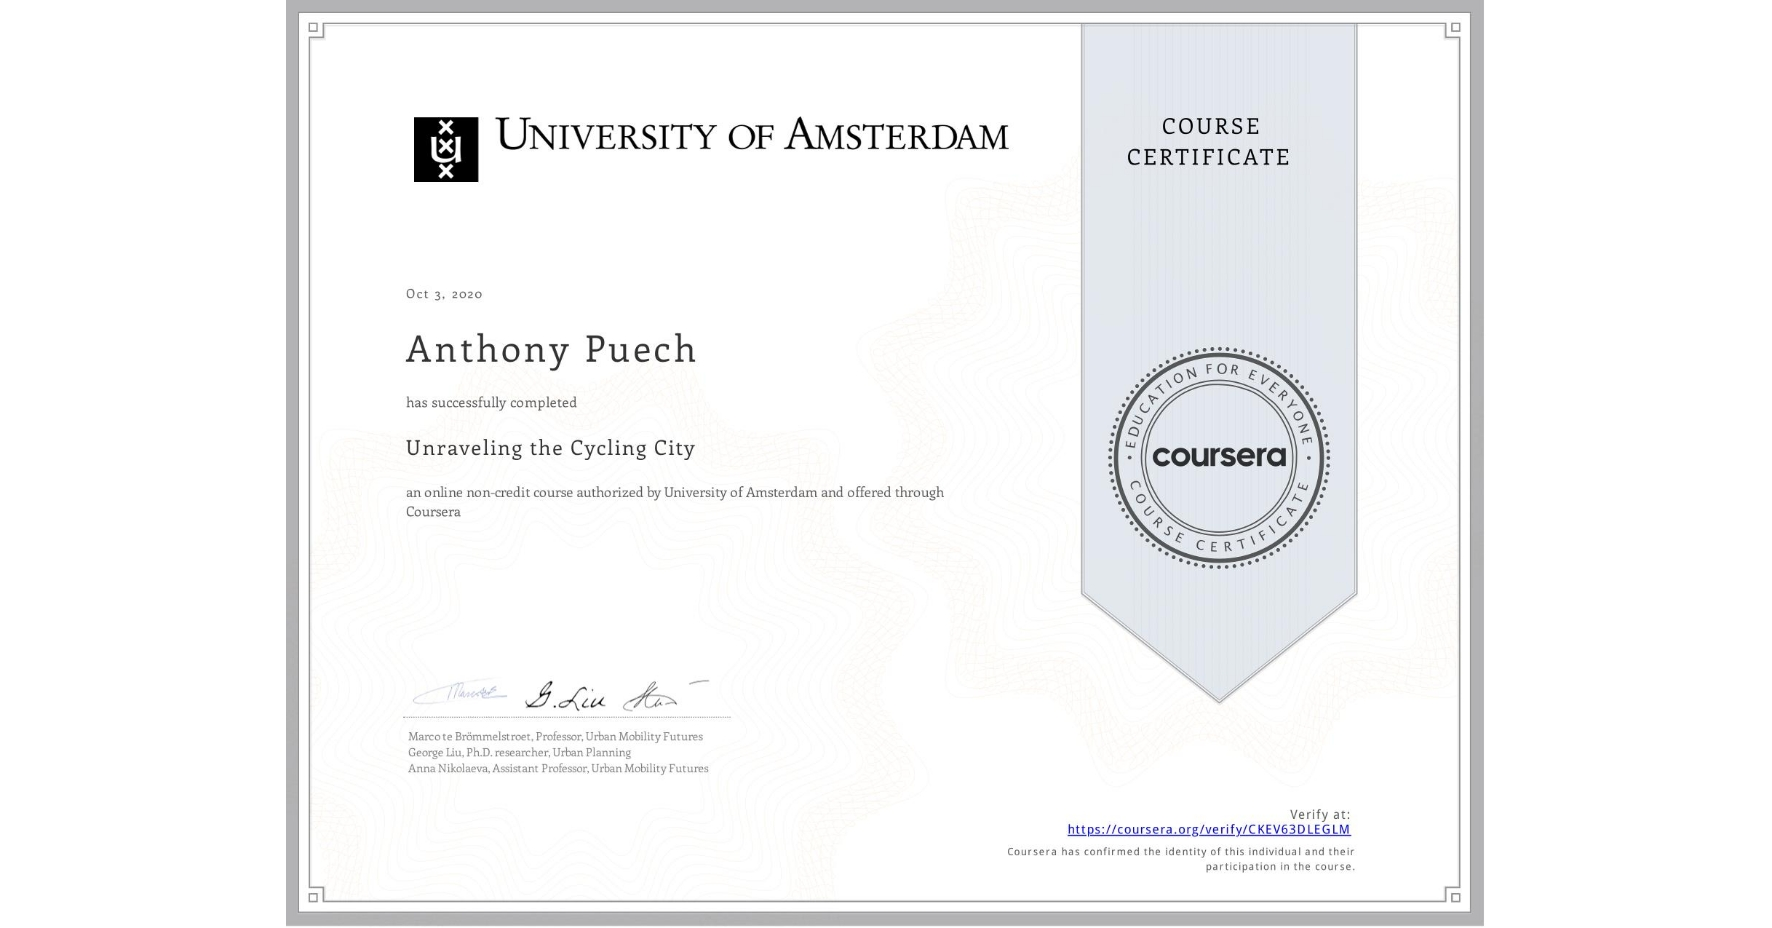 View certificate for Anthony Puech, Unraveling the Cycling City, an online non-credit course authorized by University of Amsterdam and offered through Coursera